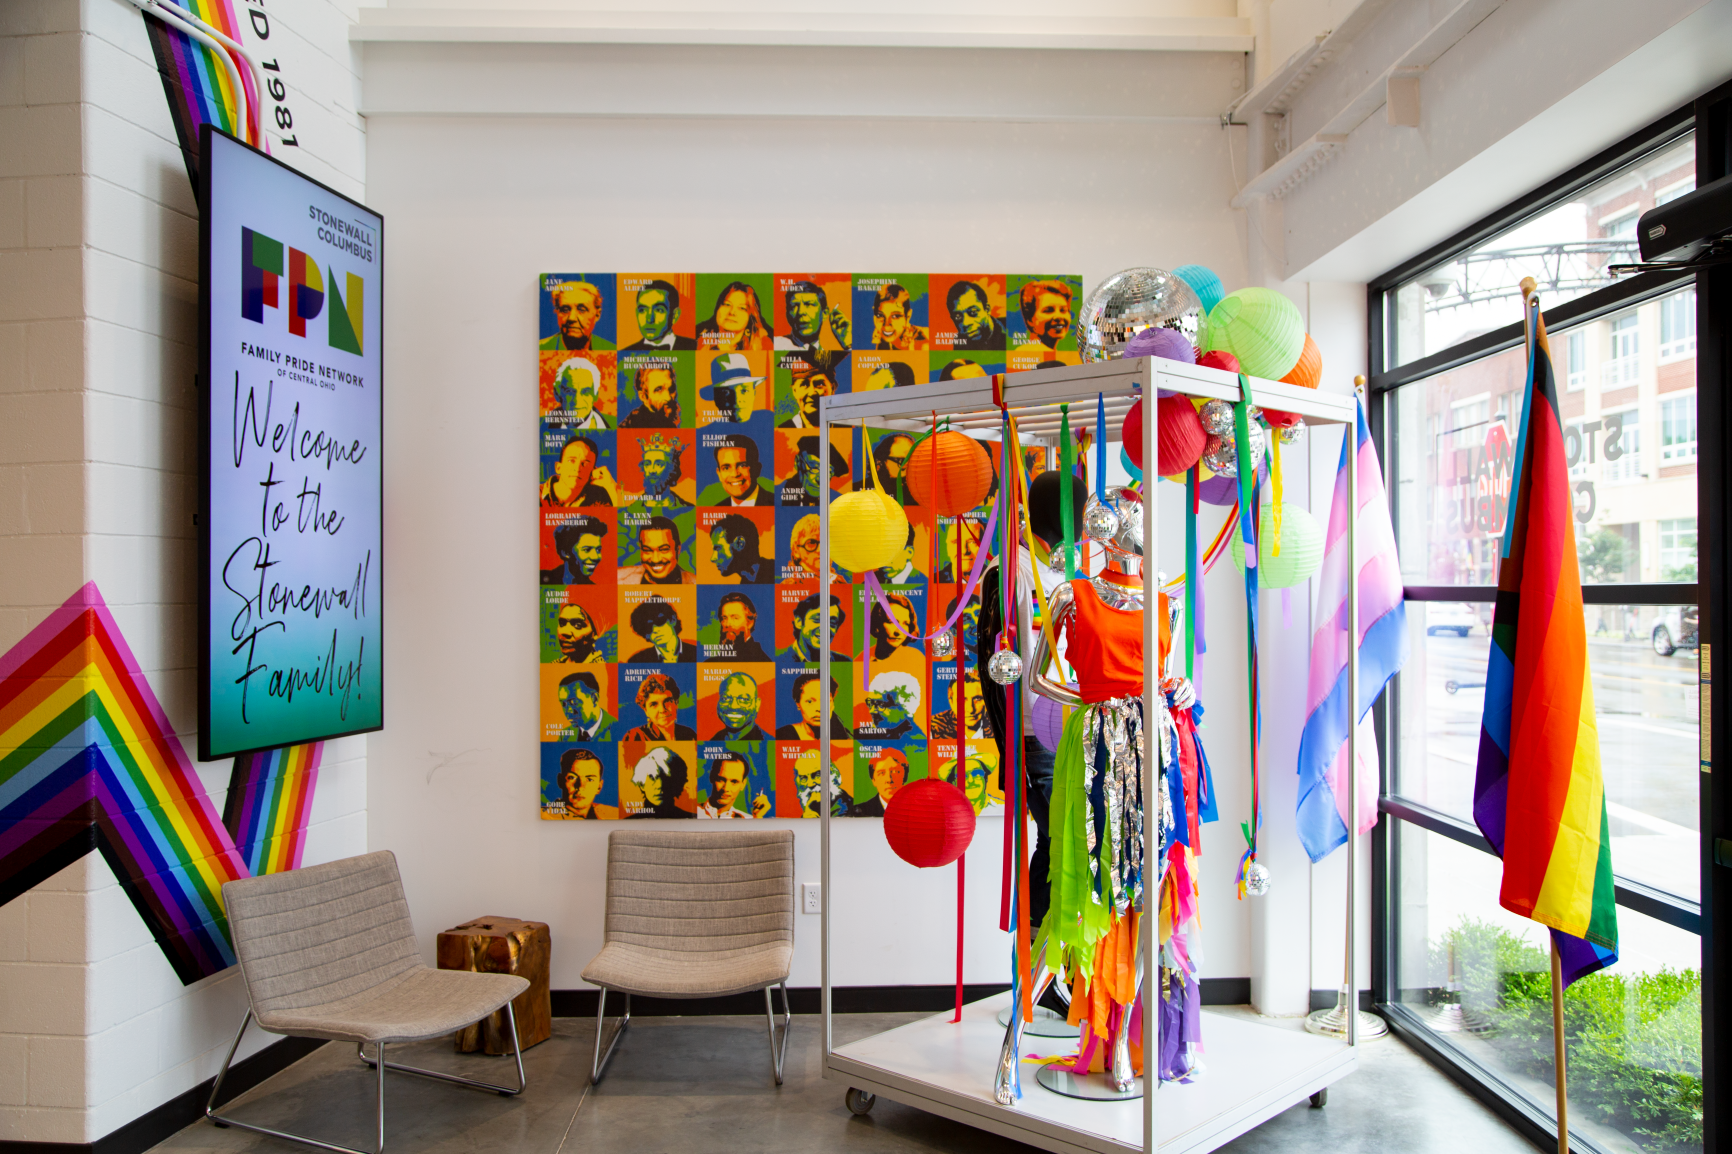 The space features afashion display along with a collage of influential leaders to showcase important LGBTQ+ history at Stonewall Columbus Continental Office Branding